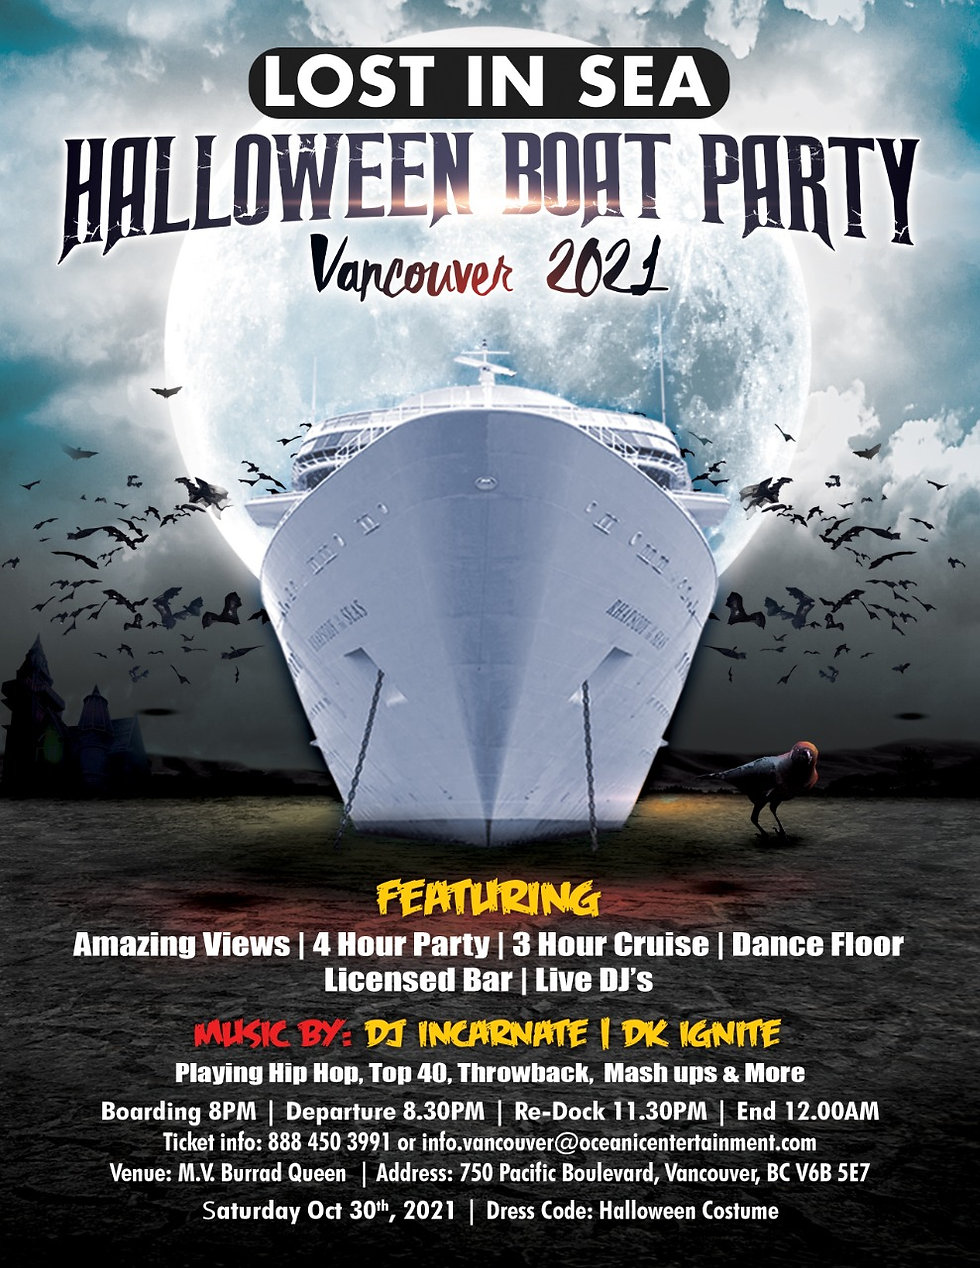 Vancouver Halloween Boat Party 2021.jpeg